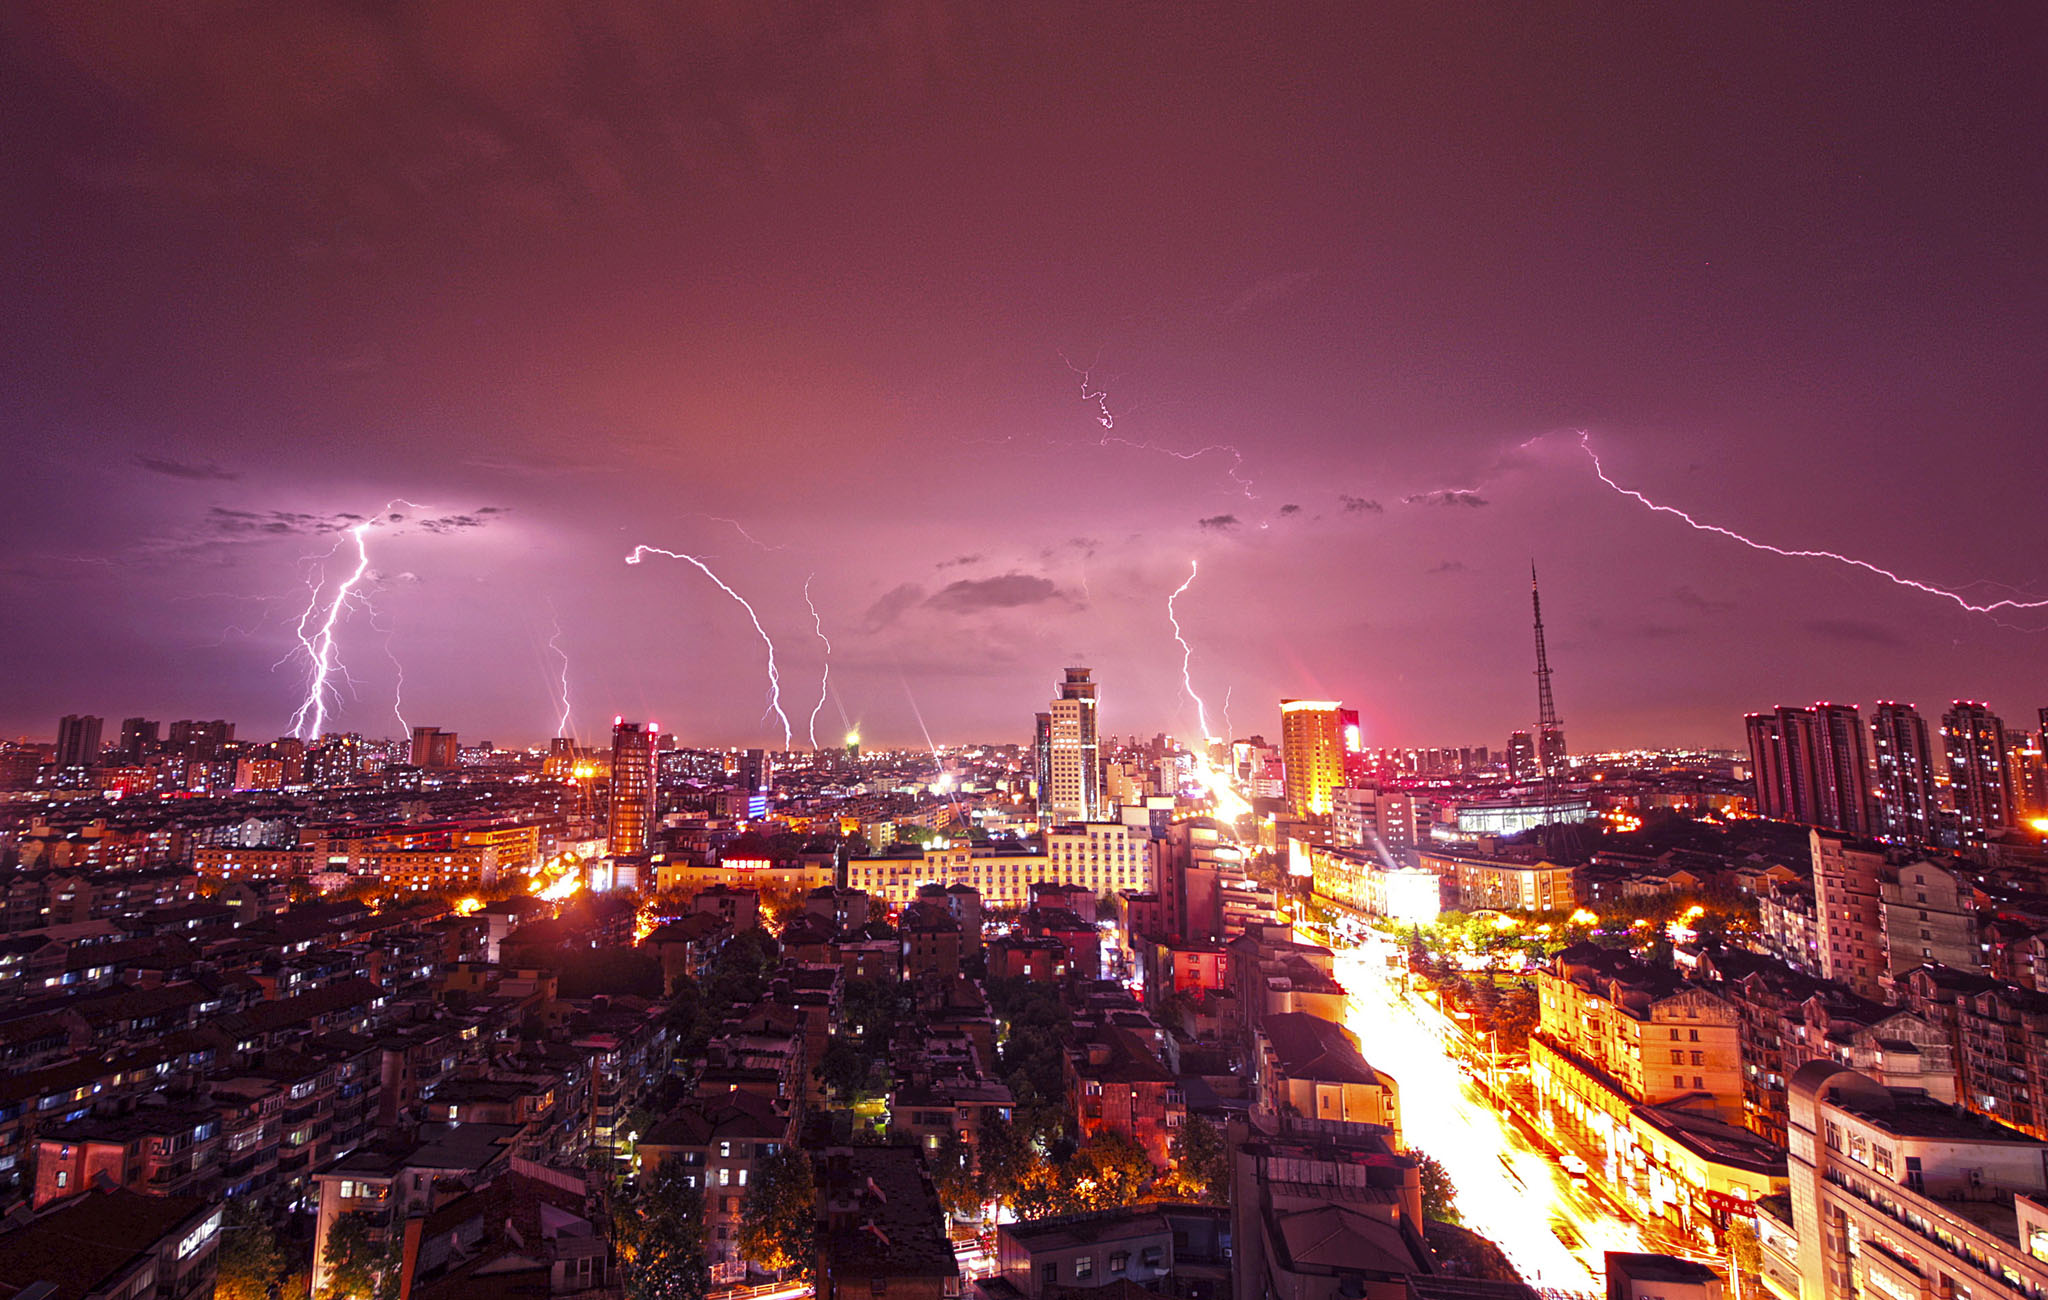 Lightning strikes over buildings during heavy rainfall in Kunshan, Jiangsu province, September 2, 2014.